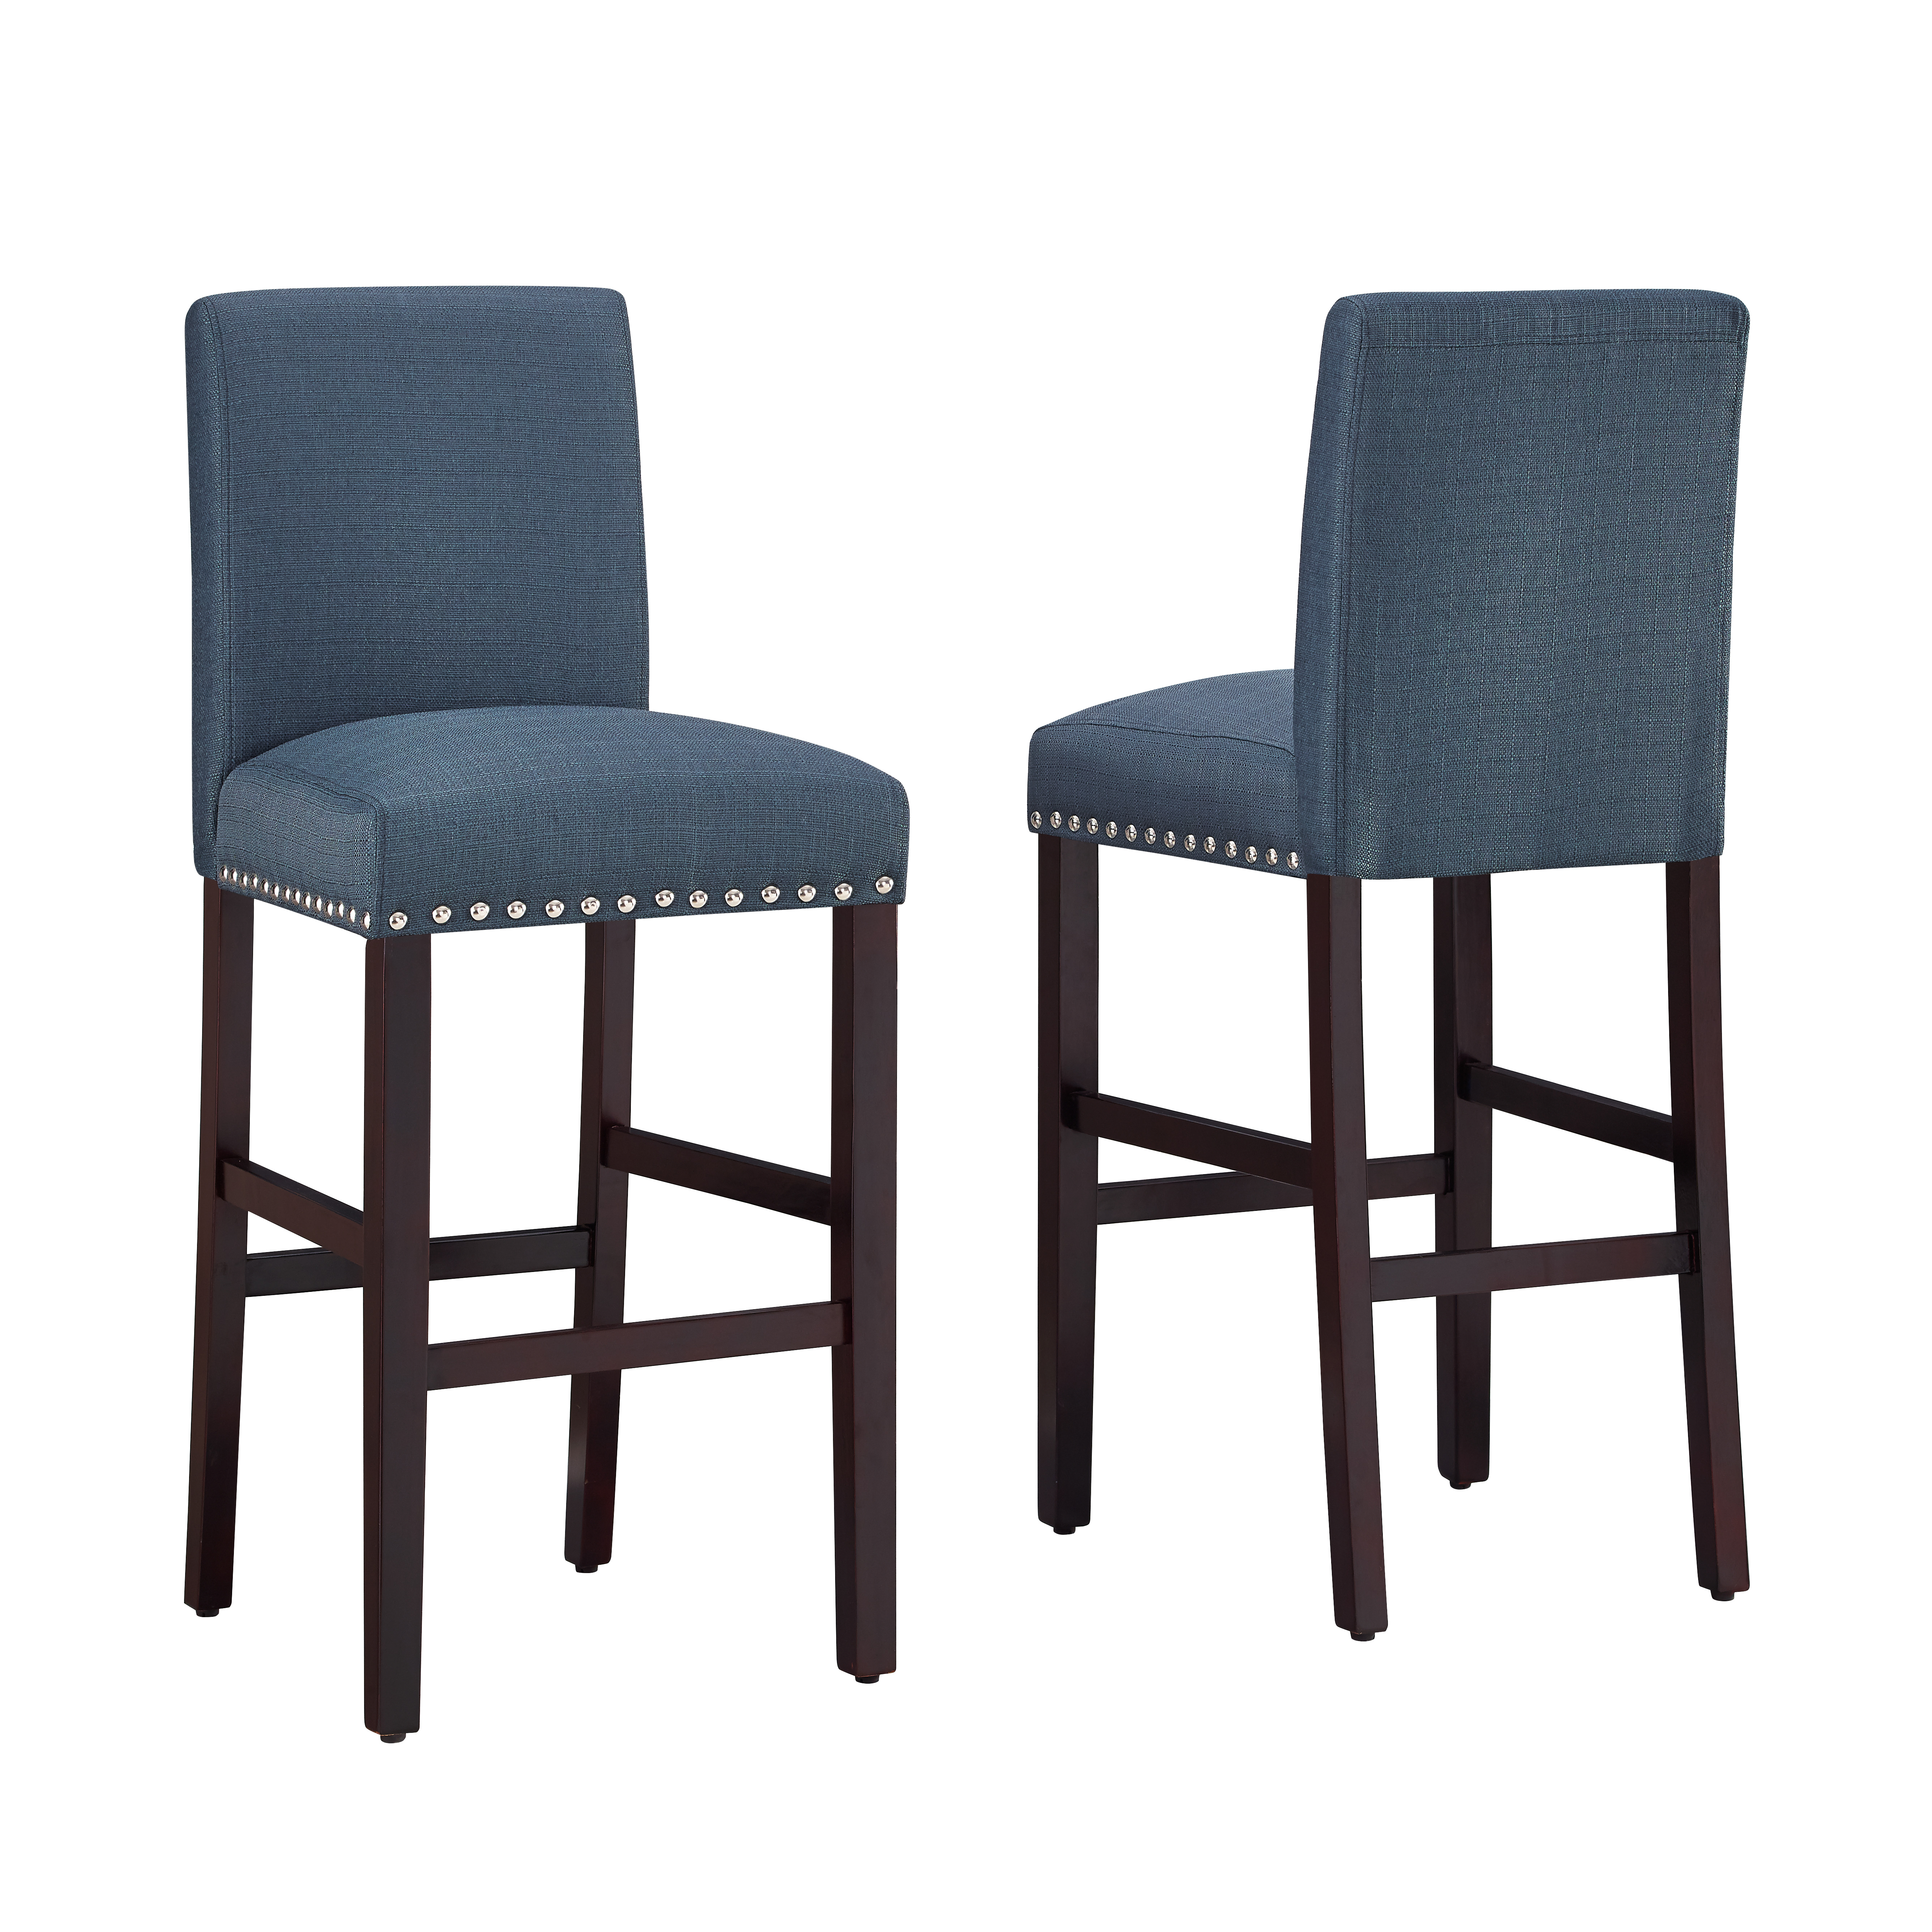 DHI Nice Nail Head Upholstered Bar Stool (2PK), Multiple Colors